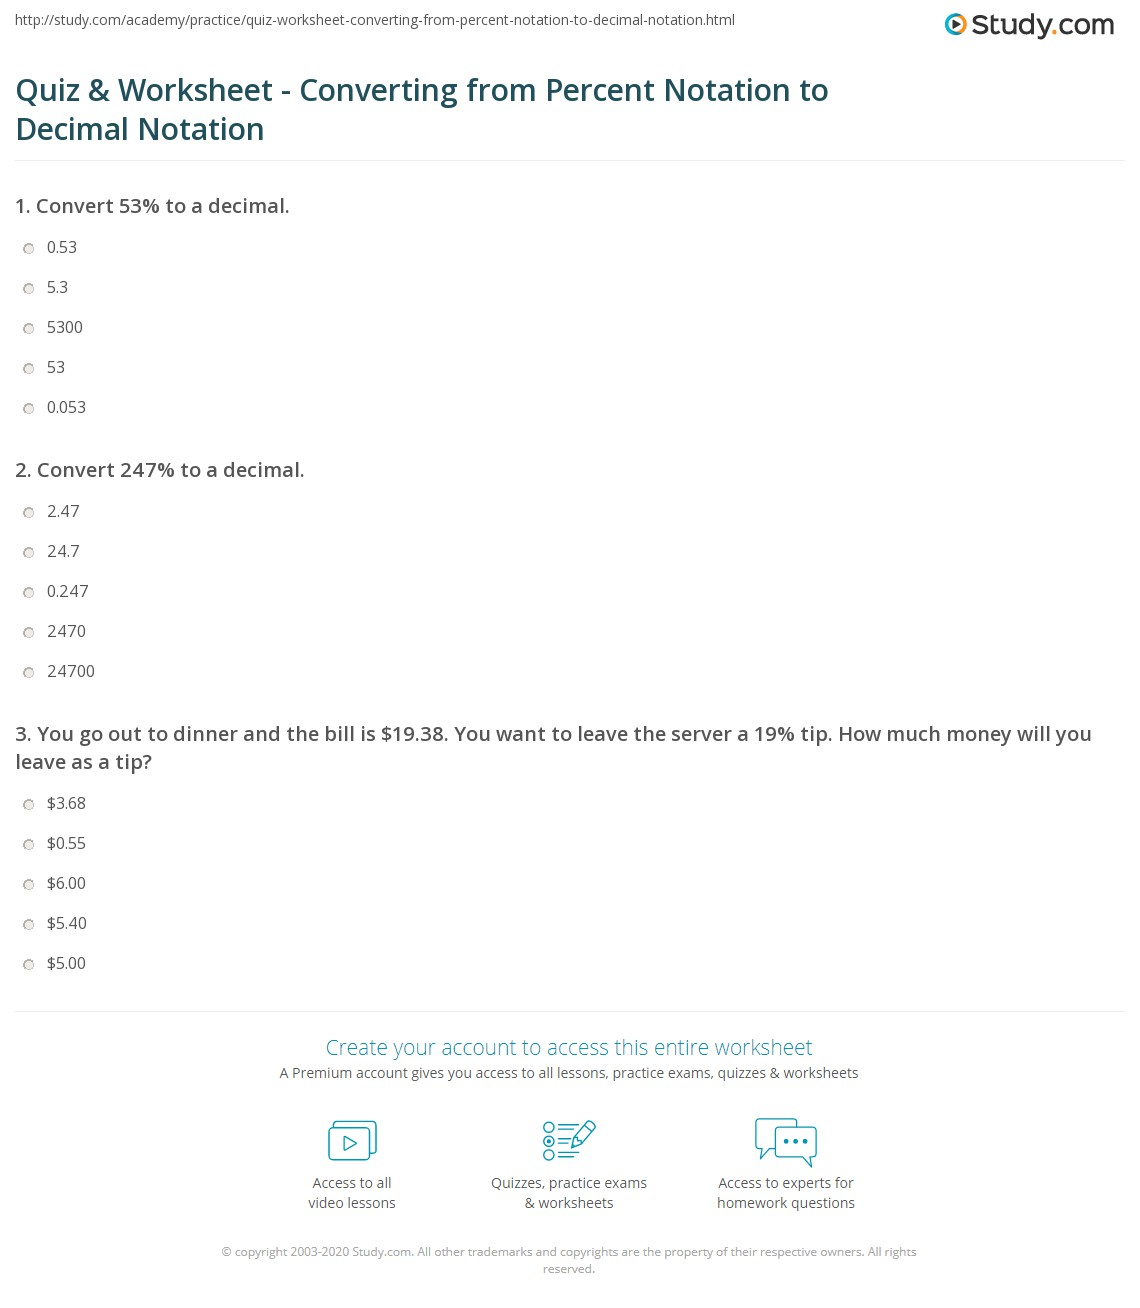 math worksheet : quiz  worksheet  converting from percent notation to decimal  : Changing Percents To Decimals Worksheets